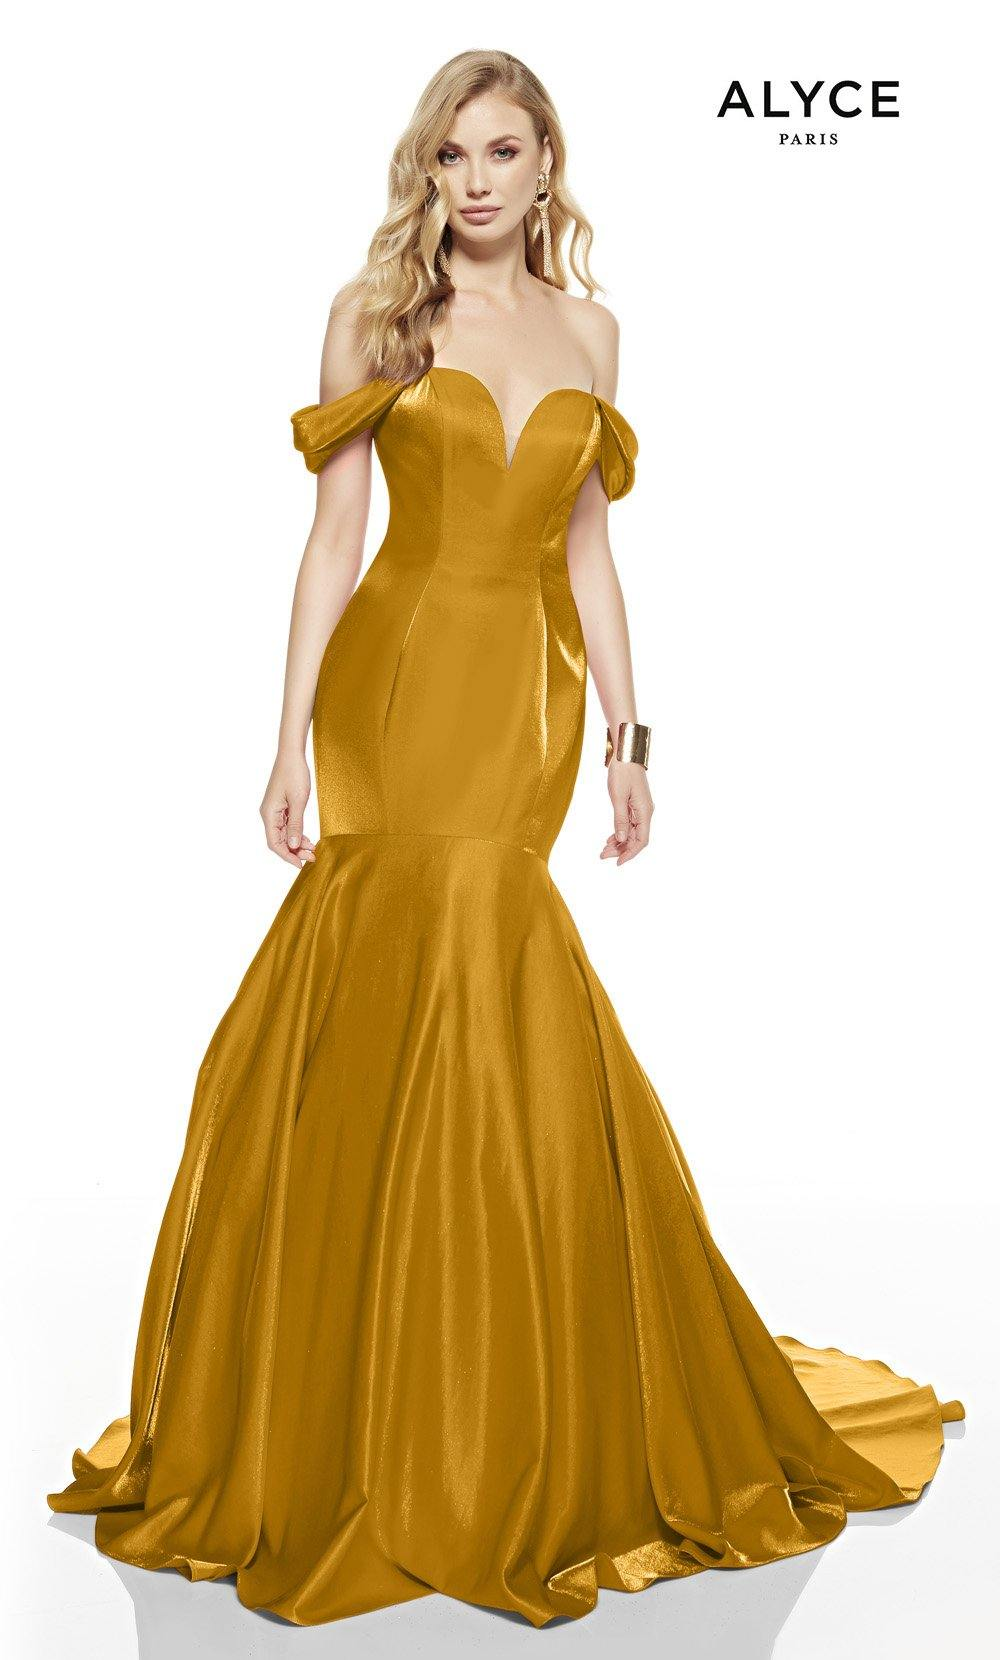 Marigold mermaid prom dress with an off shoulder neckline